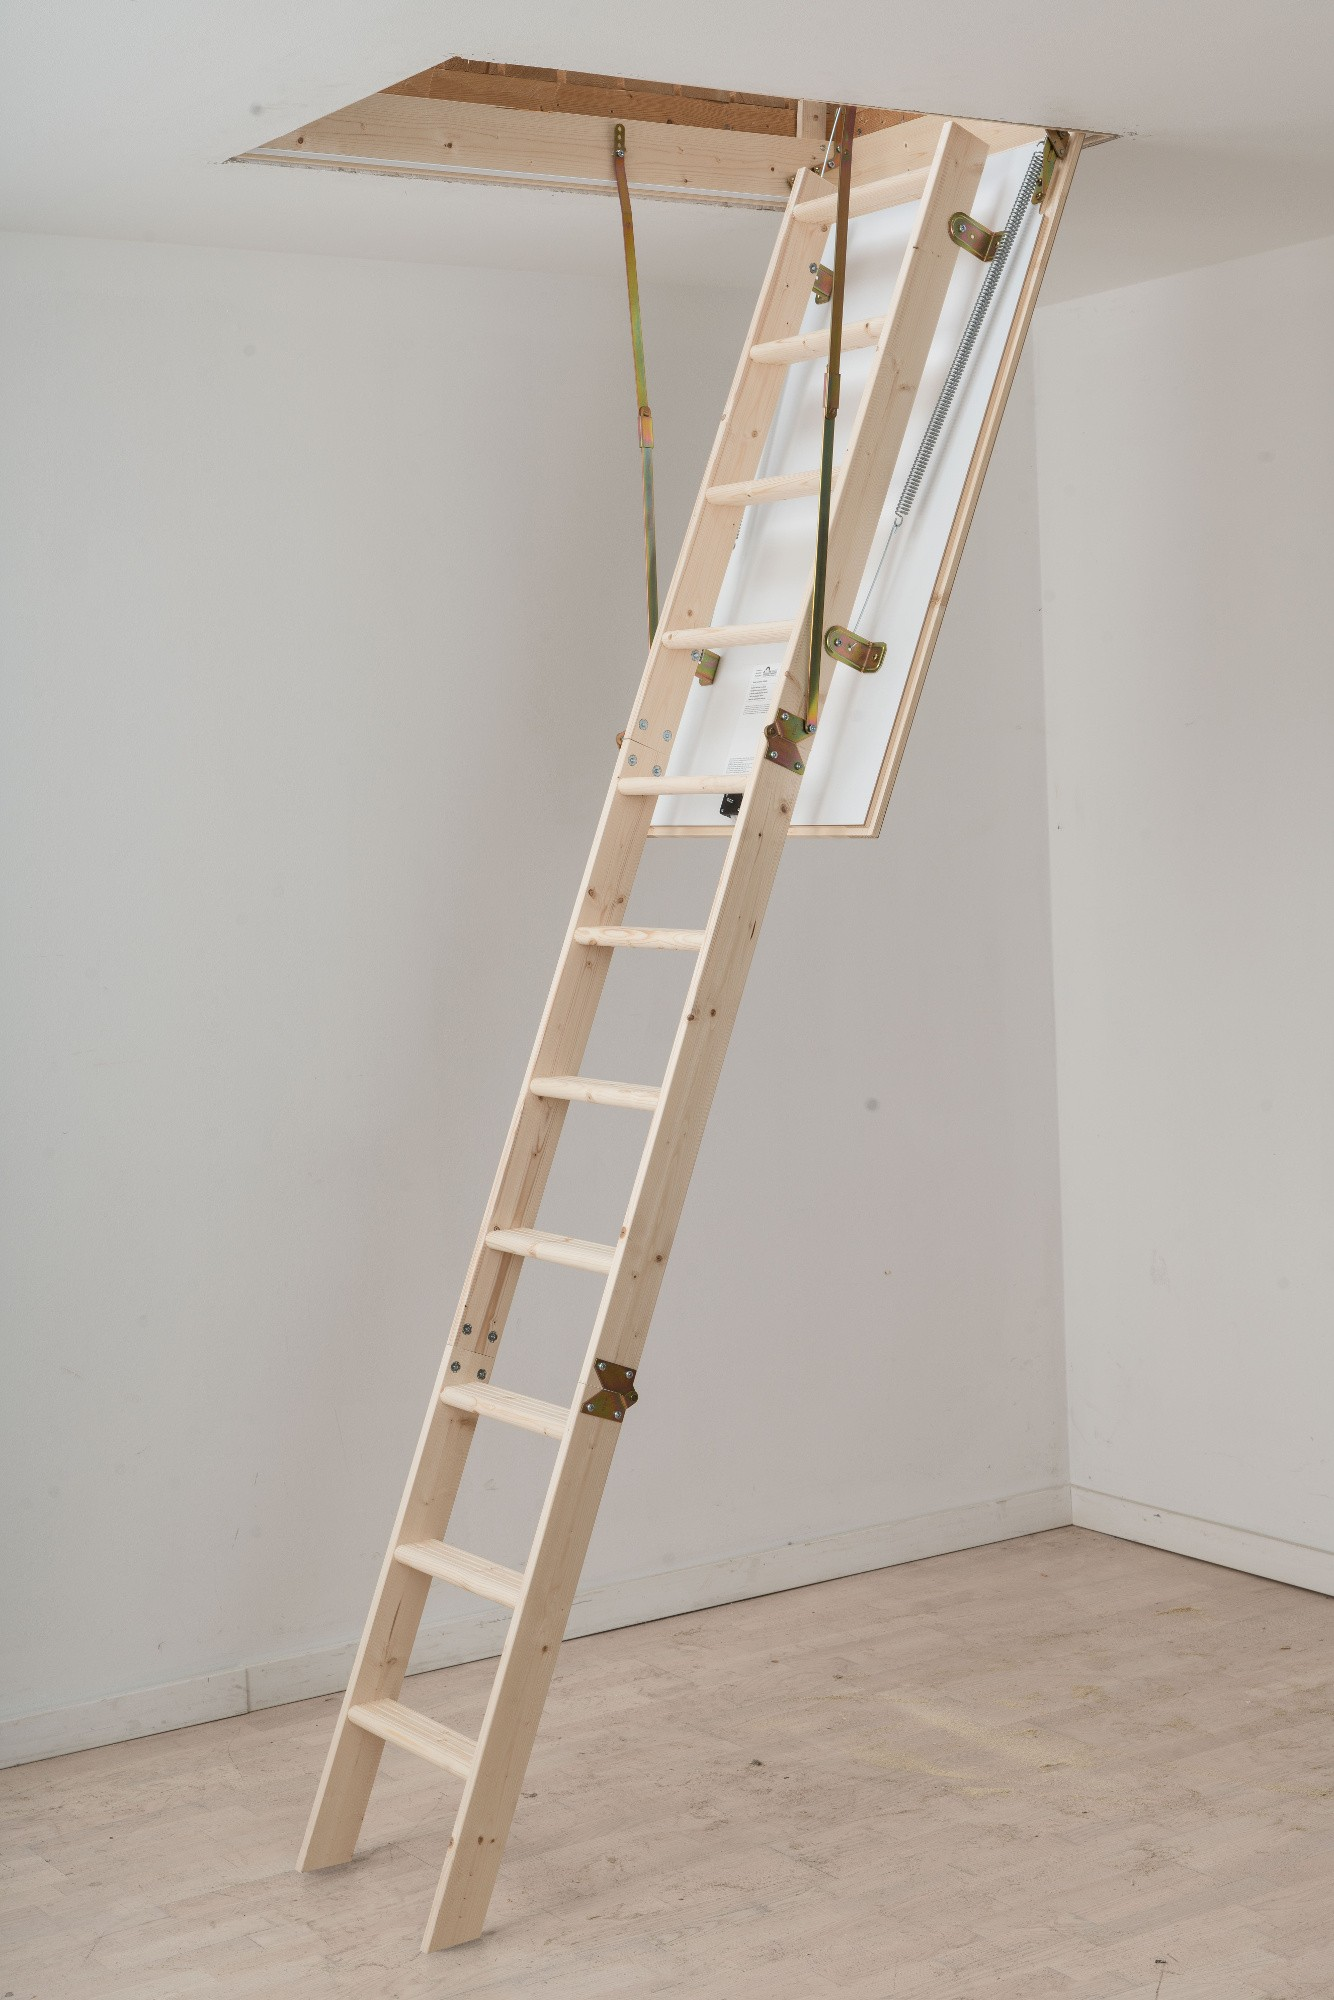 Dolle Loft Ladders - Which are right for you?